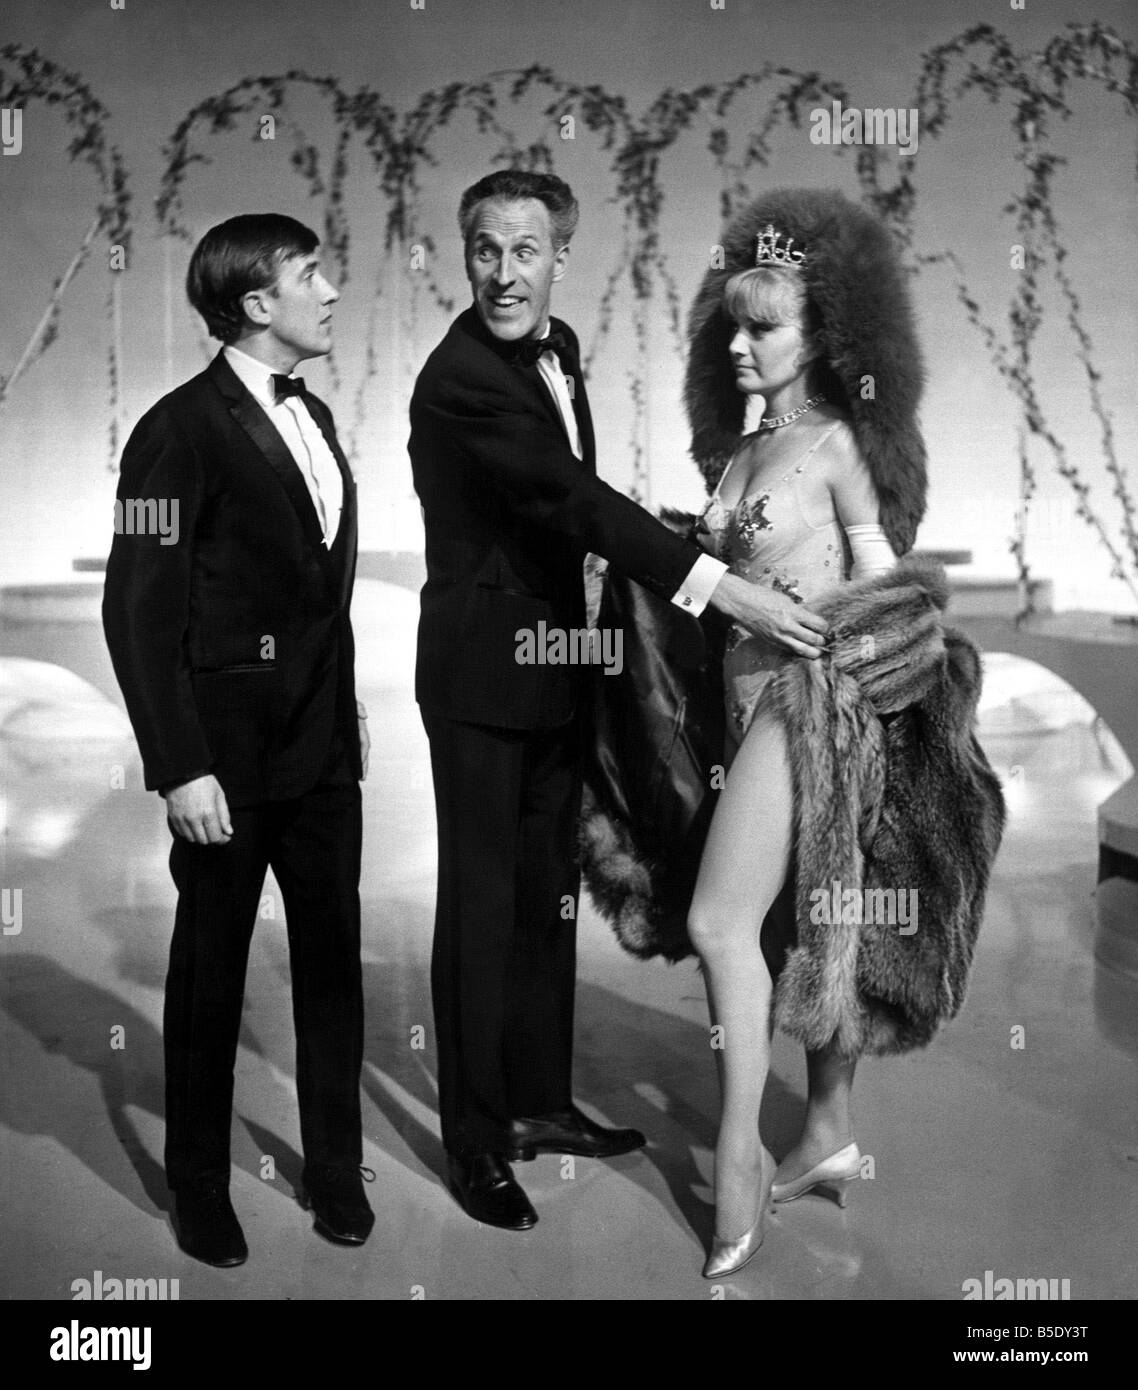 The Bruce Forsyth Show with Roy Castle and Georgina Allen circa 1965 - Stock Image